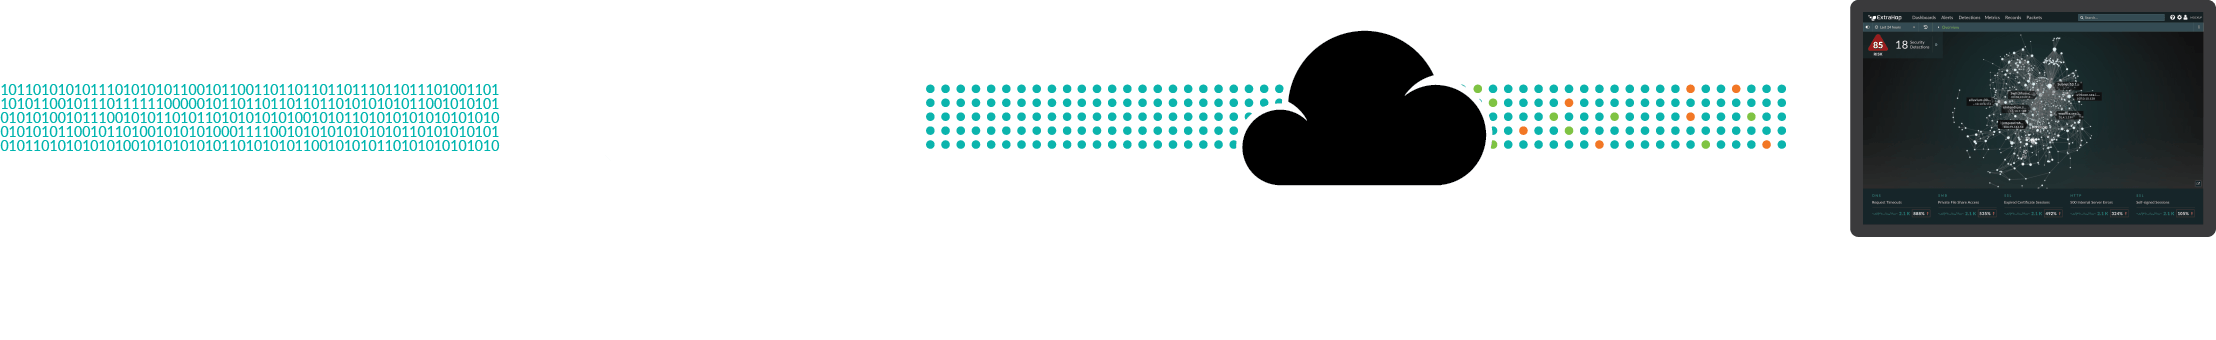 wire data for security